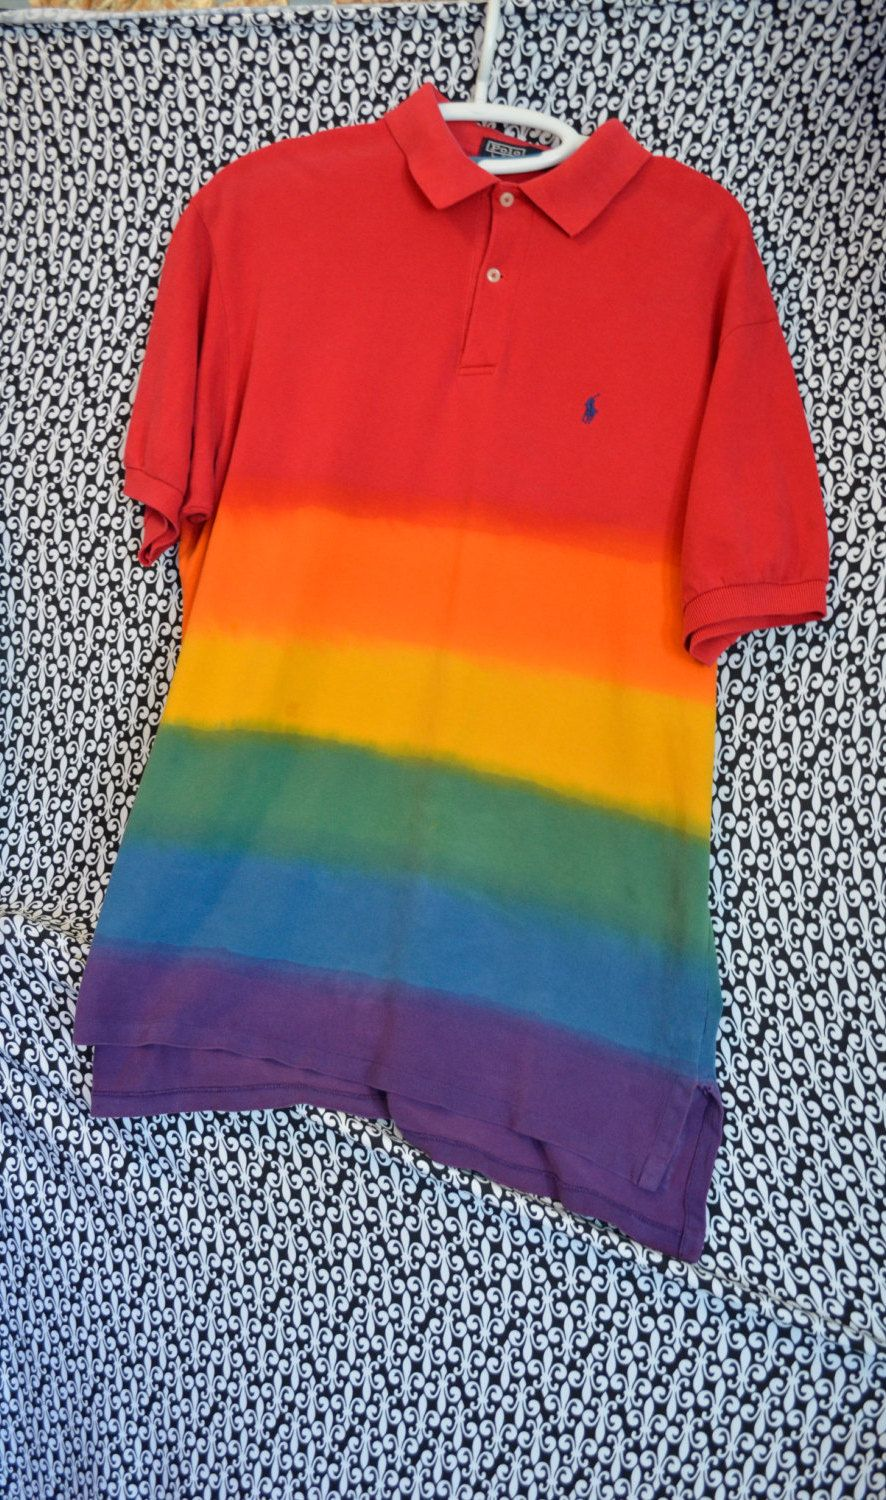 6fab5dce POLO Ralph Lauren Rainbow 90s Polo Rugby shirt XL old school hip hop Rave  festival by SerialMateriaL on Etsy